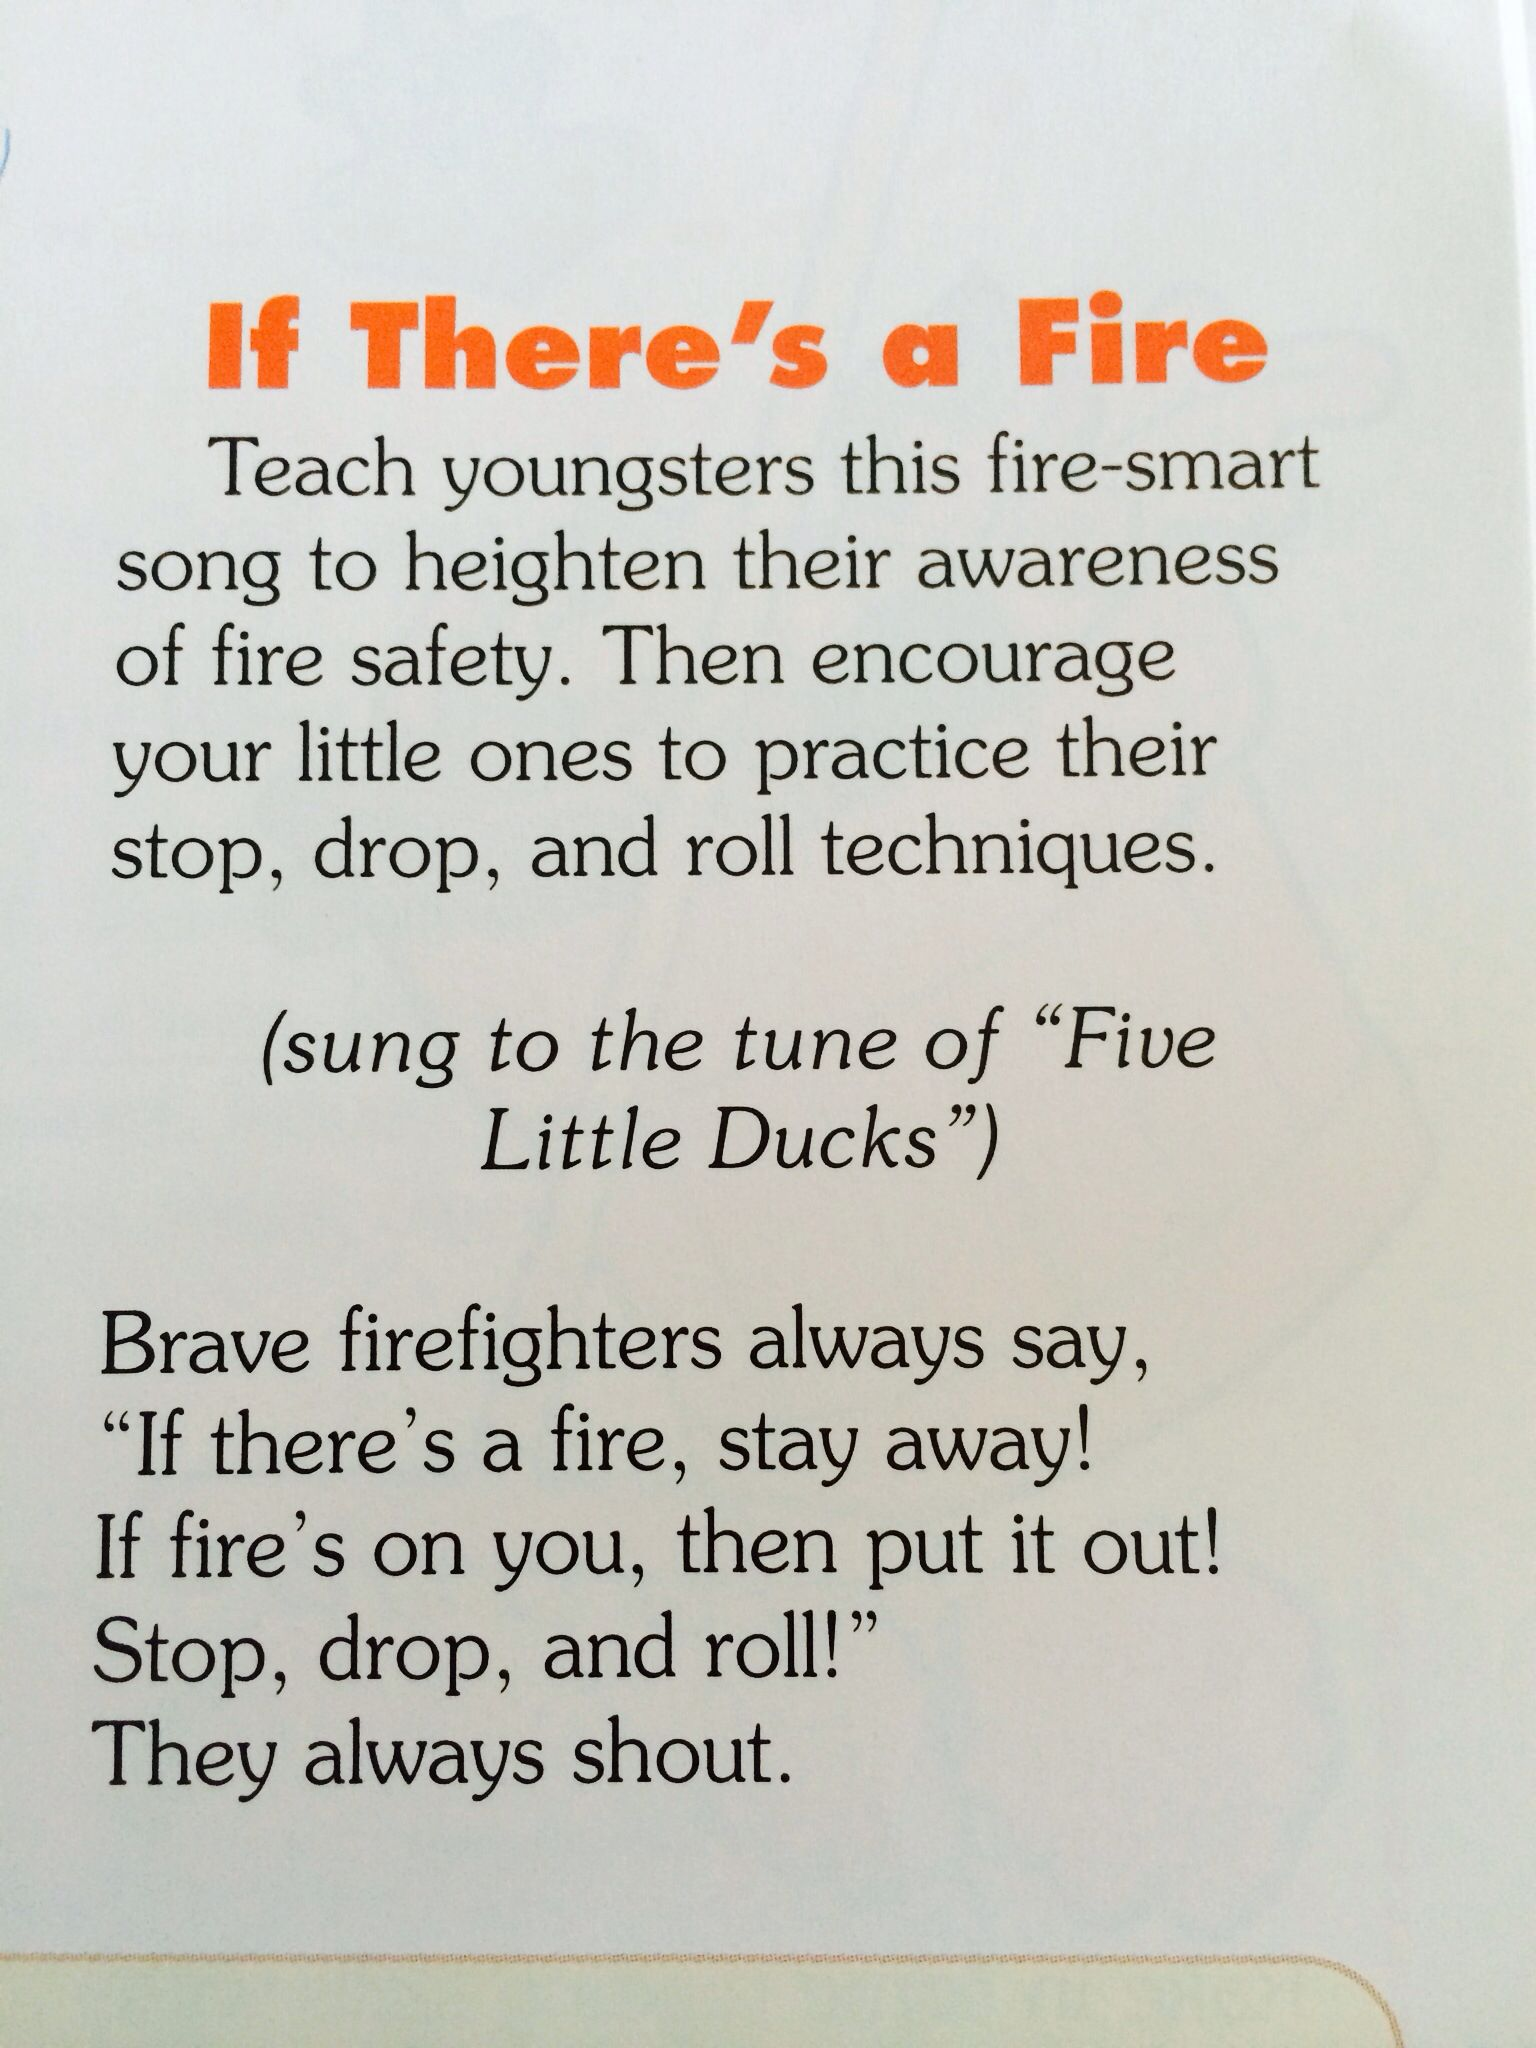 Fire safety Song (With images) Fire safety lesson plans